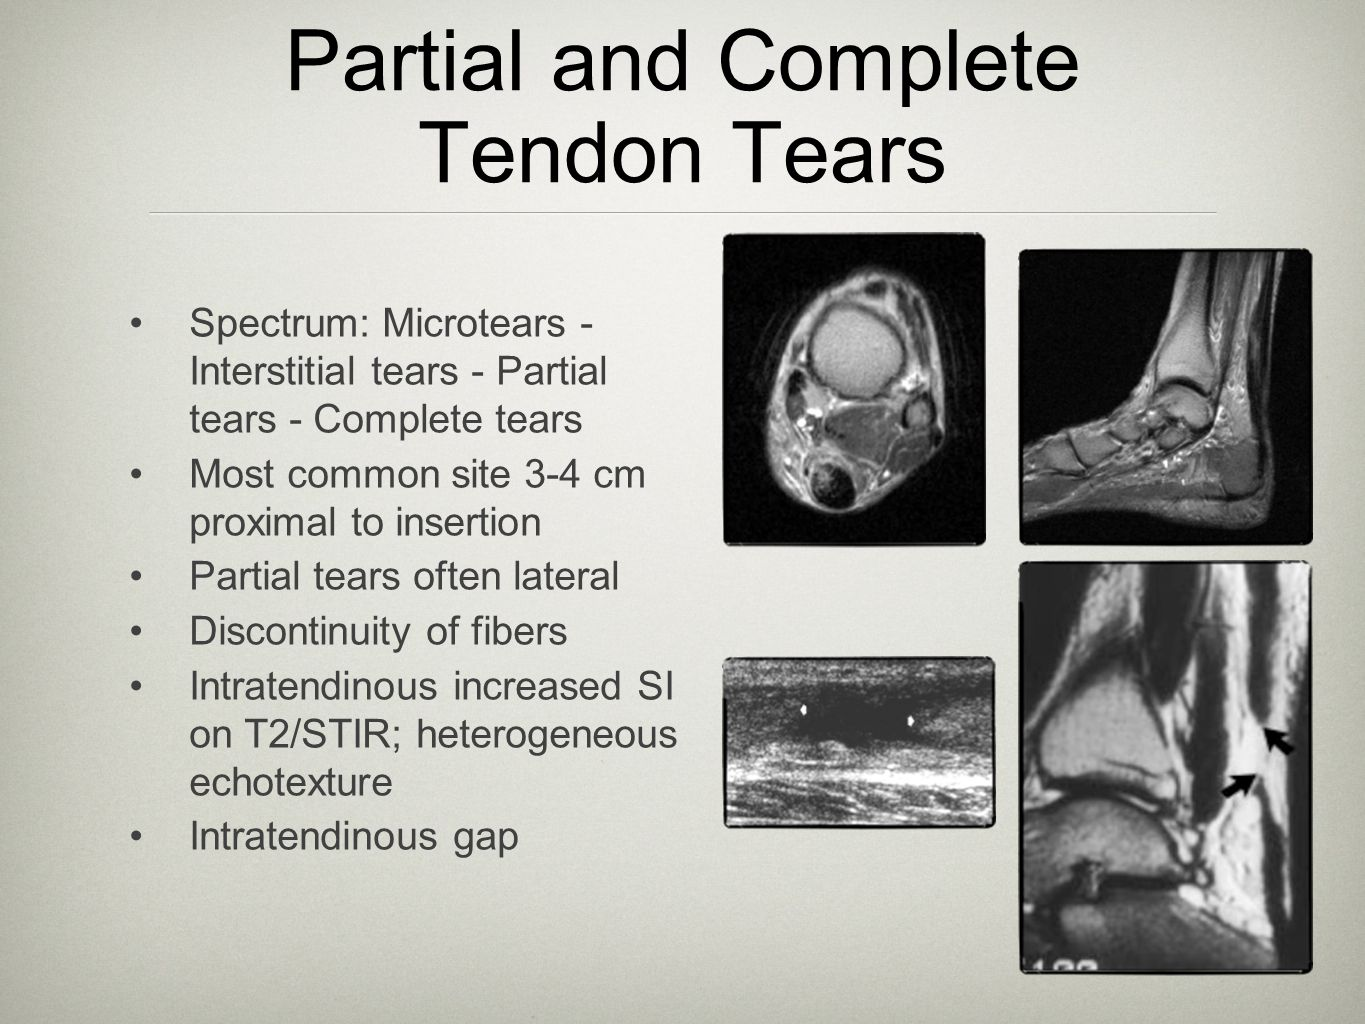 Partial and Complete Tendon Tears